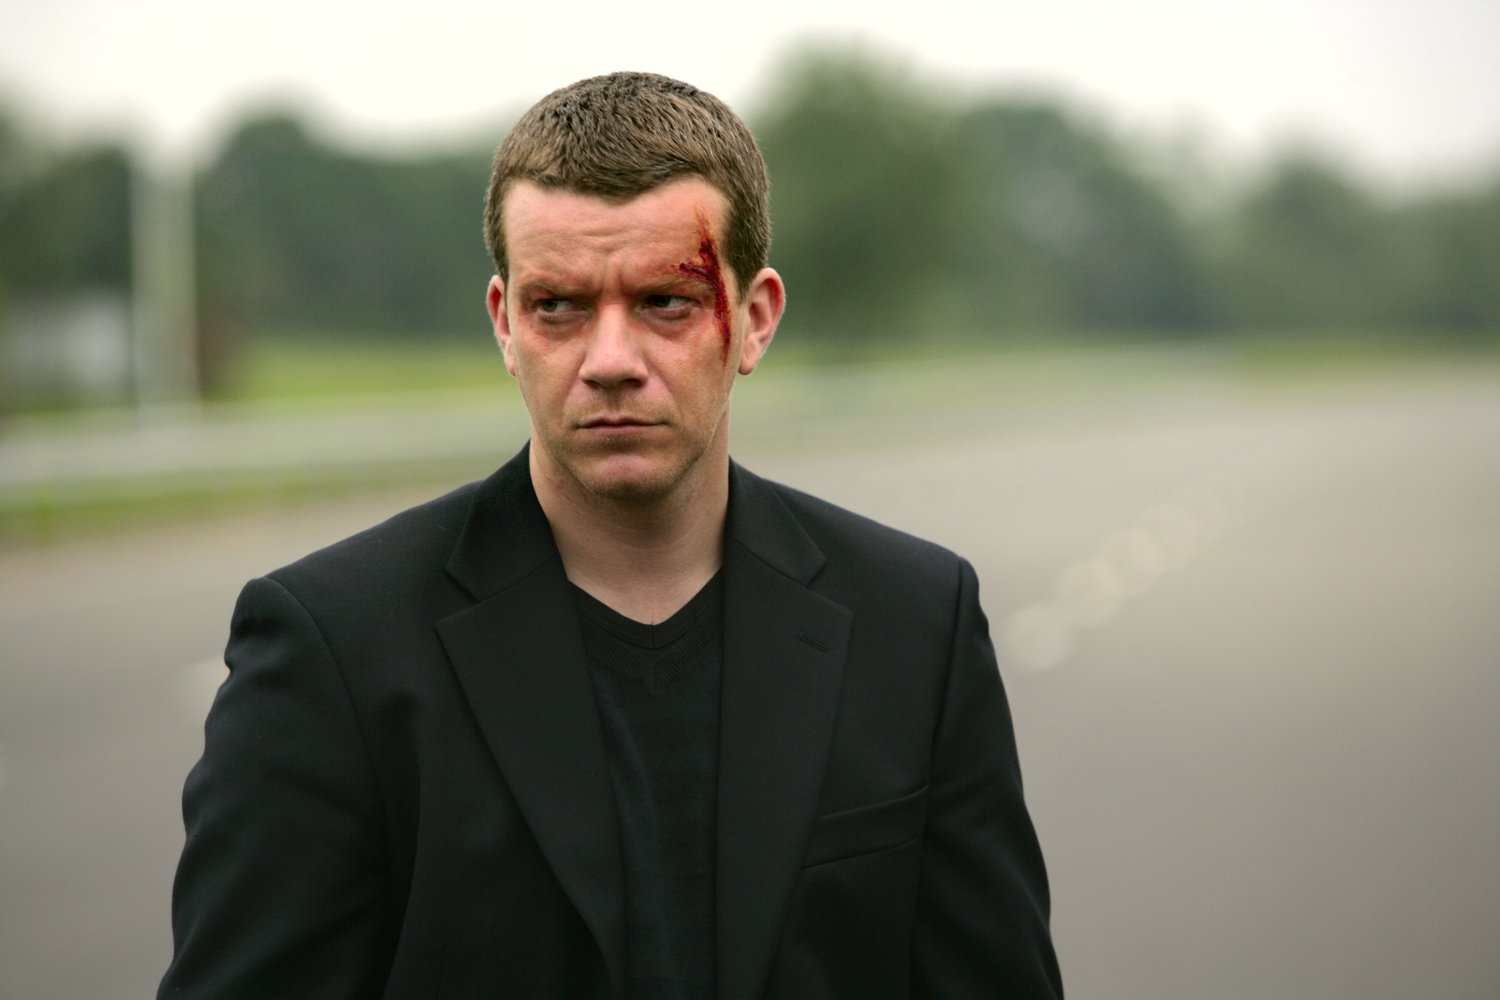 picture Max Beesley (born 1971)